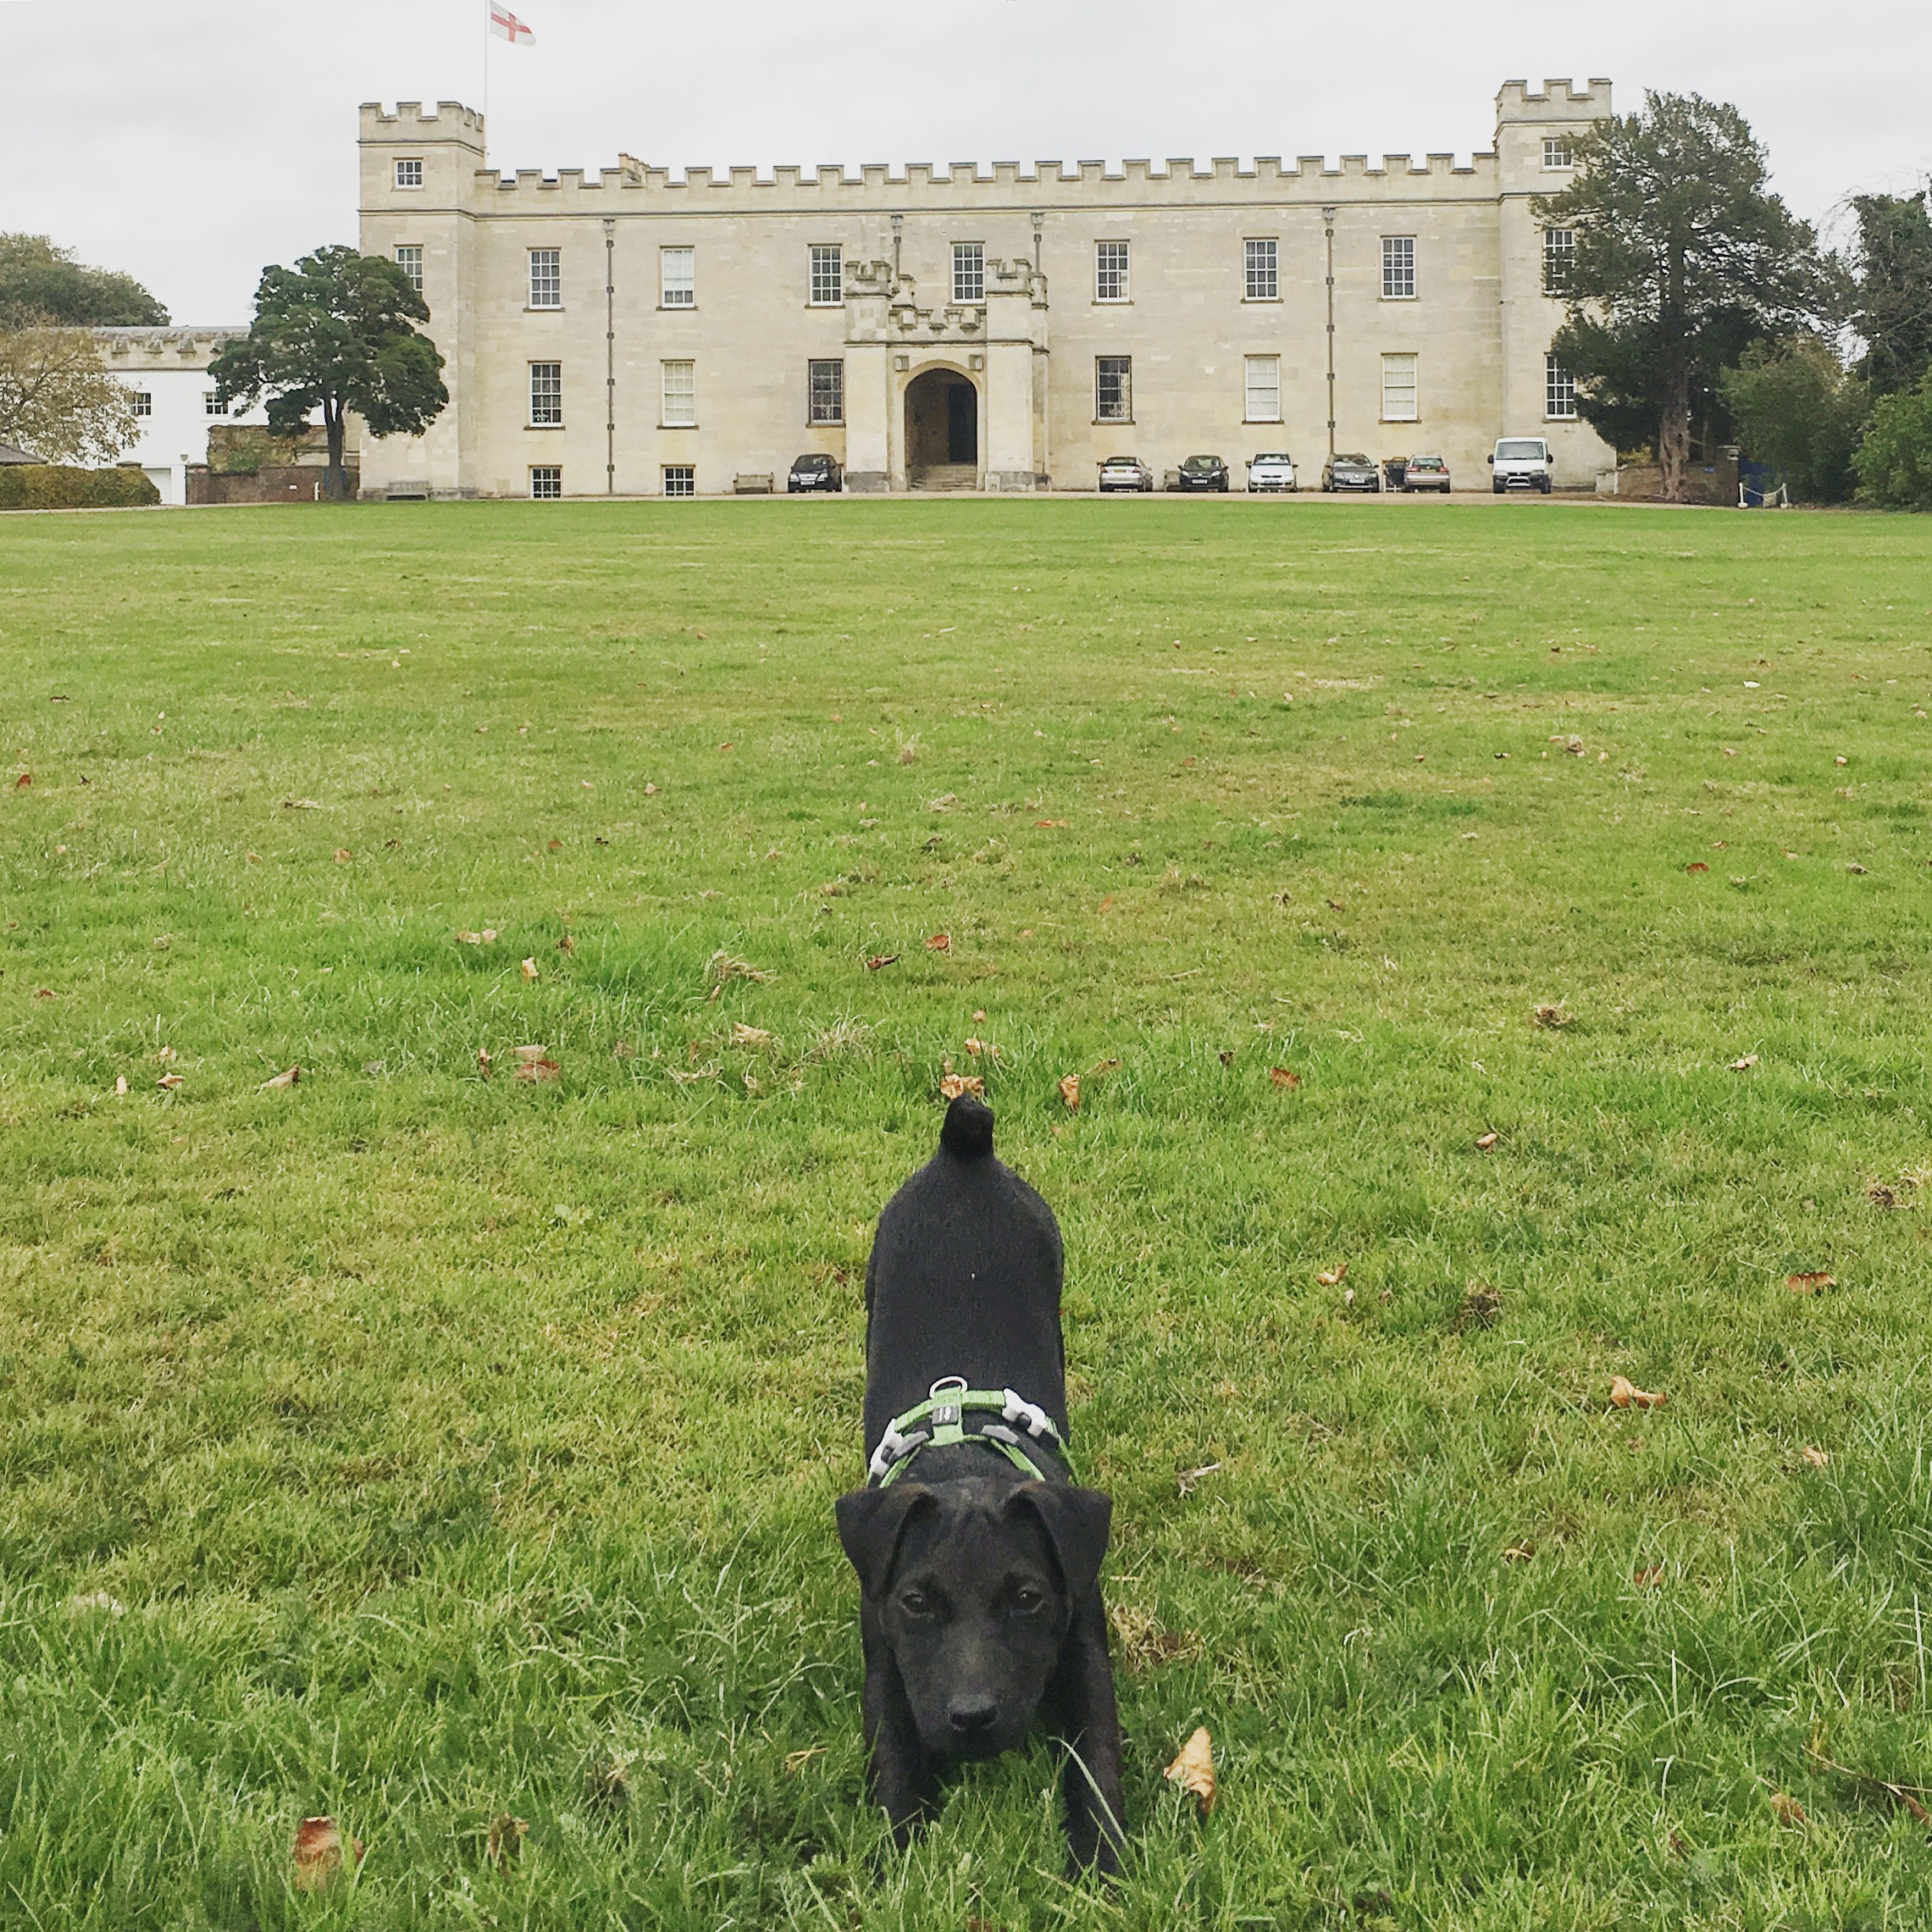 Tixall in front of Syon House, the ancestral home of the Dukes of Northumberland